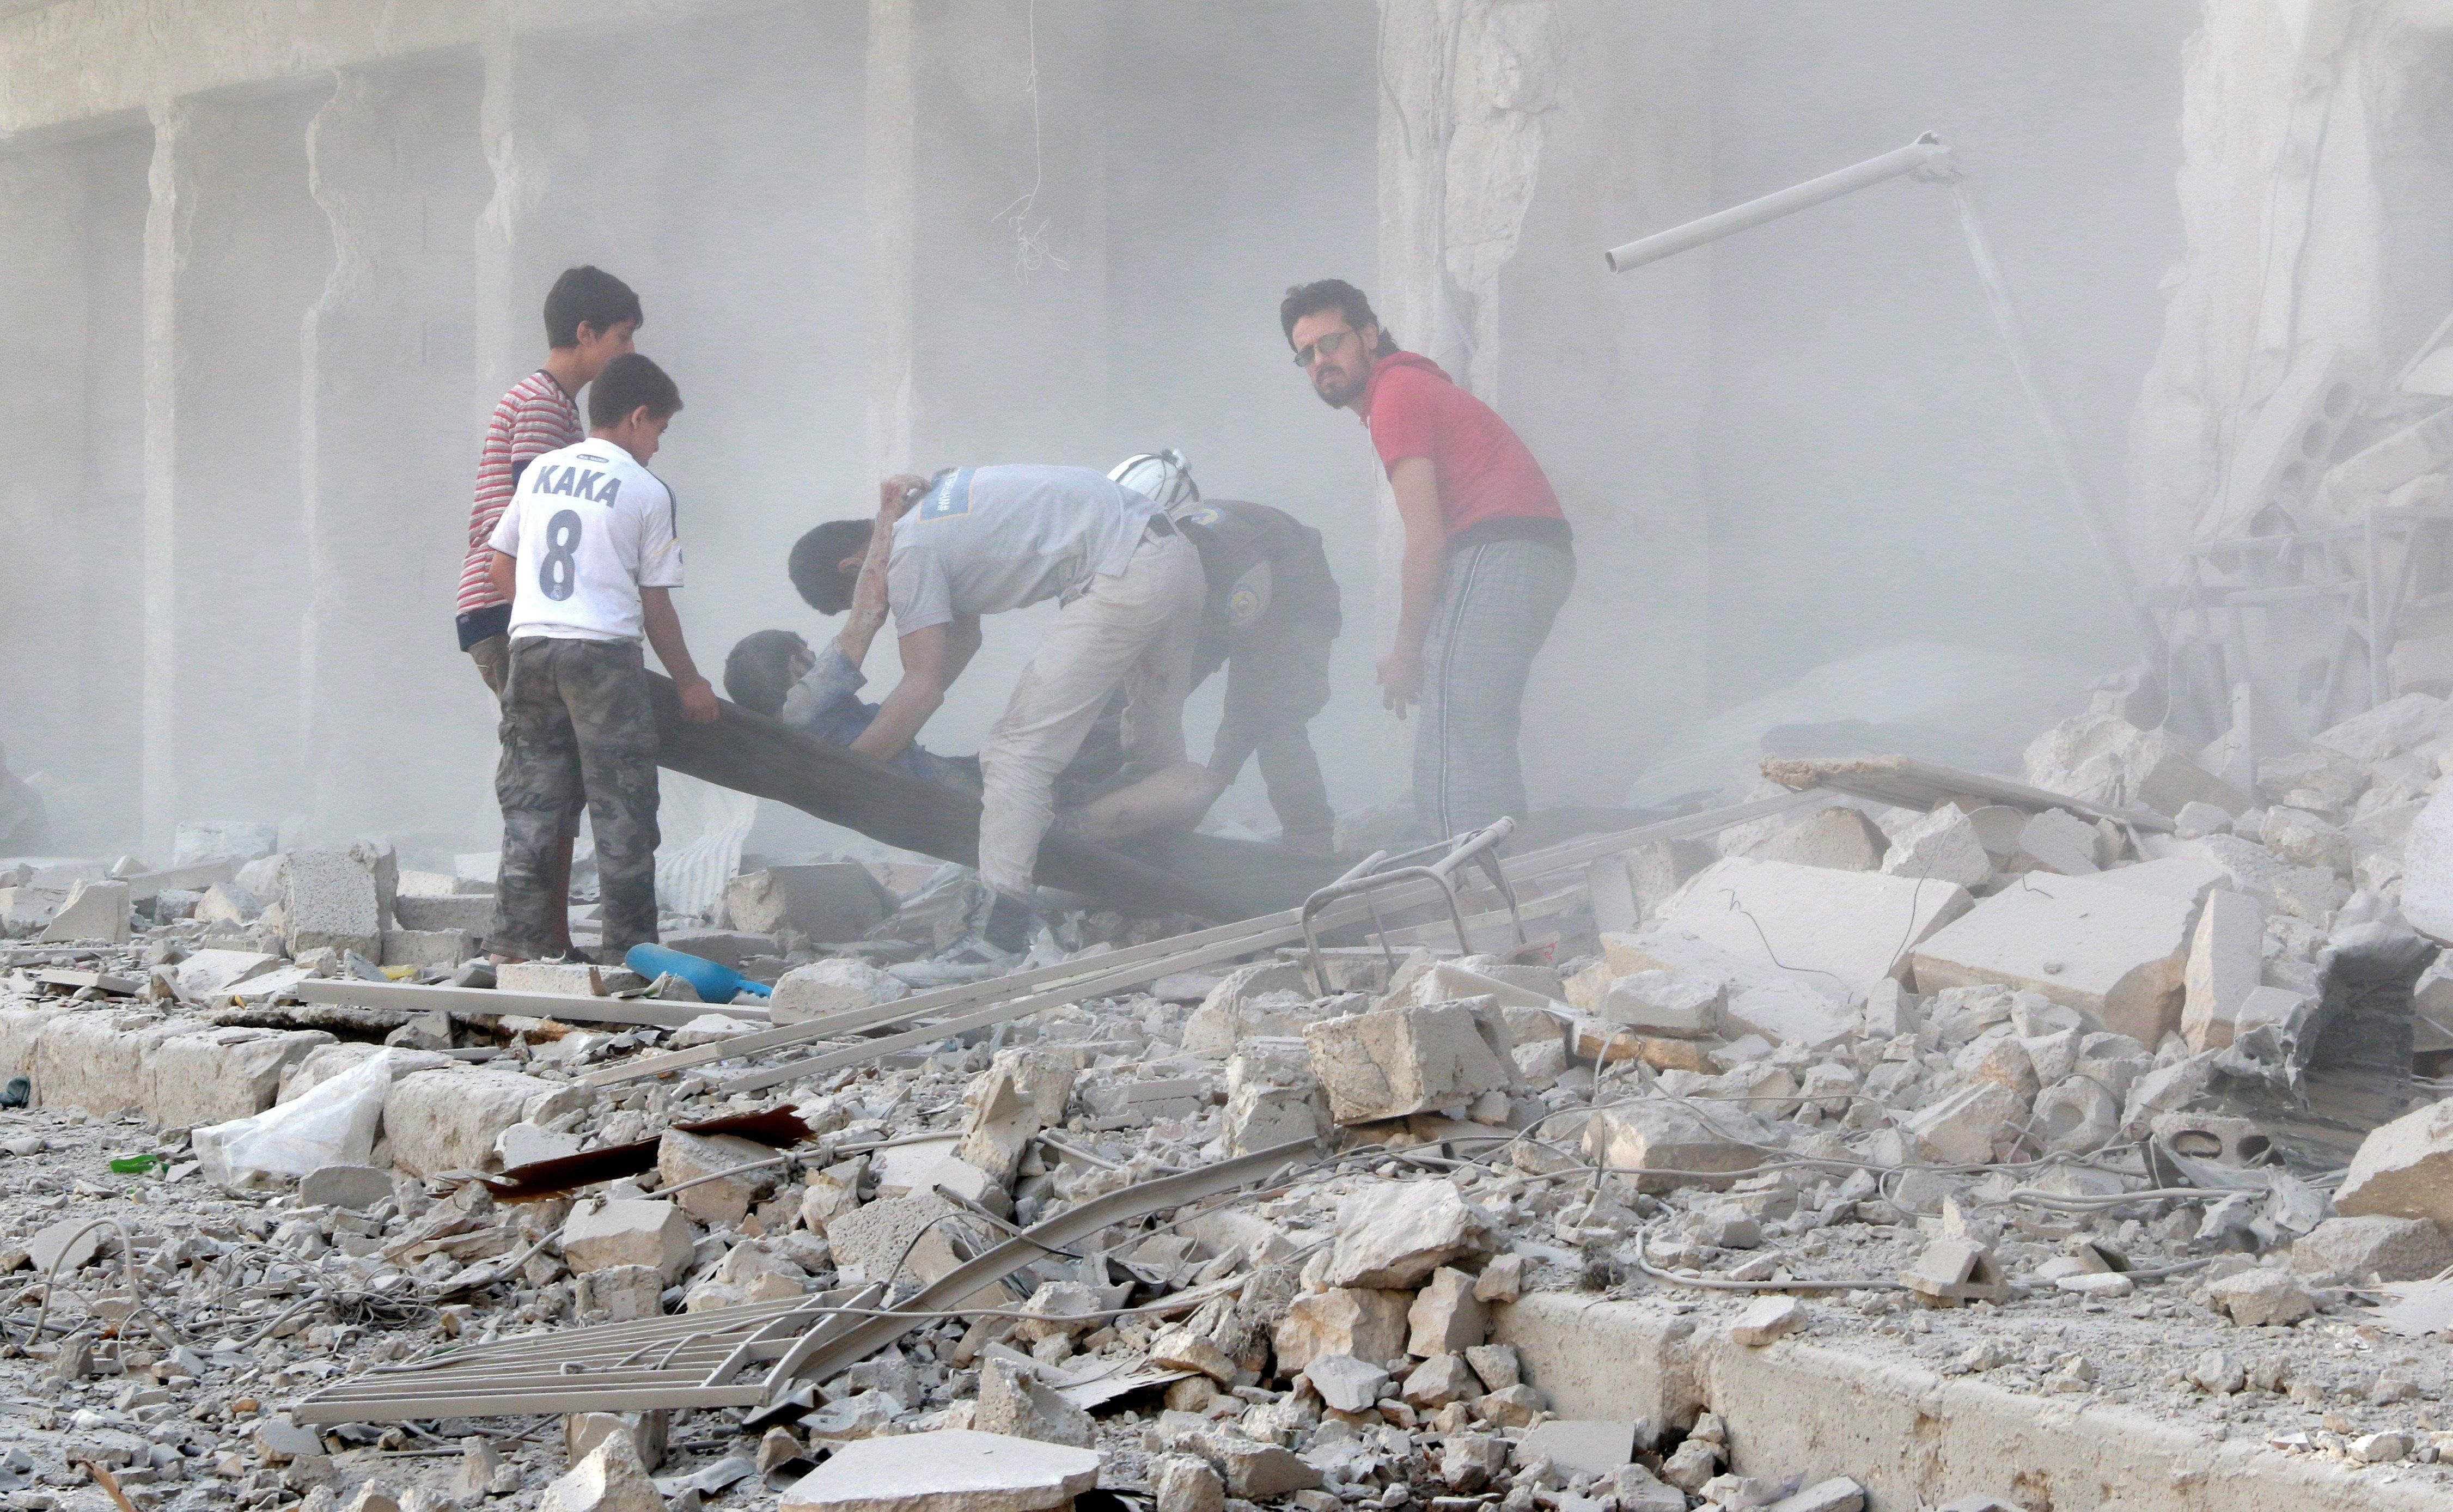 With no truce, the Syrian airstrikes continue to destroy Aleppo and its citizens.